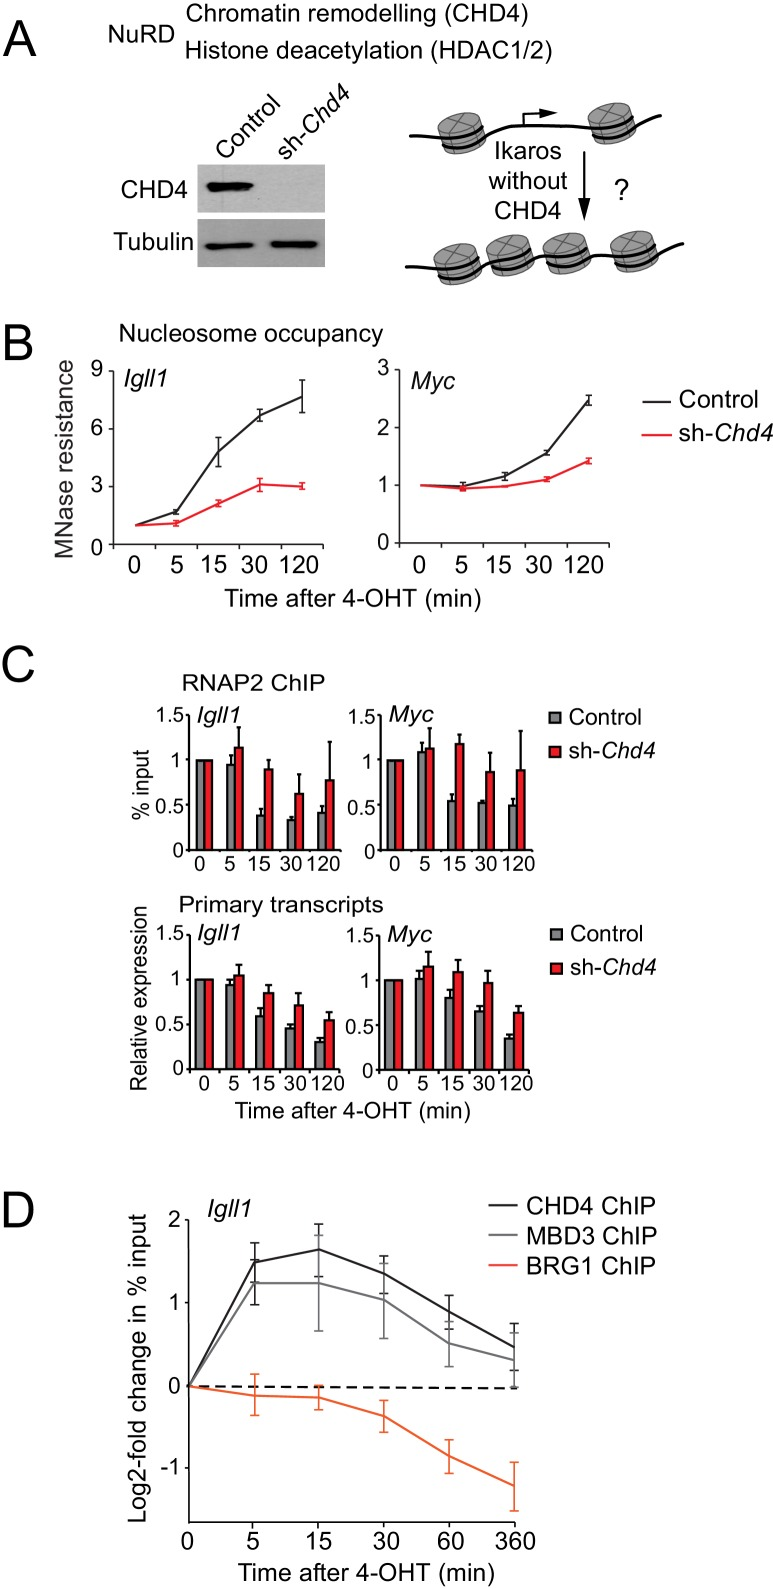 Ikaros controls promoter accessibility through NuRD-associated chromatin remodeling. ( A ) Left: CHD4 expression in control and Chd4 shRNA cells by western blotting. Tubulin is a loading control. One of 5 independent biological replicates. Right: Experimental outline. ( B ) MNase-PCR at the Igll1 and Myc promoters in control (black) or Chd4 shRNA cells (red) at the indicated times after 4-OHT. Mean ± SE, 3 independent biological replicates. Chd4 shRNA significantly reduced the Ikaros-induced increase in nucleosome occupancy at 15, 30 and 120 min at the Igll1 promoter and at 30 and 120 min at the Myc promoter. ( C ) RNAP2 ChIP-PCR (top) and MNase-PCR (bottom) at the Igll1 and Myc promoters after 4-OHT in control (black) or Chd4 shRNA cells (red). Mean ± SE, 3 independent biological replicates. RNAP2 binding was significantly reduced in control cells but not in Chd4 shRNA-treated cells from 5 to 120 min after 4-OHT at the Igll1 and the Myc promoter. Primary transcripts were significantly reduced in control but not in Chd4 shRNA-treated cells at 15 and 30 min for Igll1 and at 30 and 120 min for Myc . ( D ) ChIP-PCR for CHD4 (black), MBD3 (grey) and BRG1 (orange) at the Igll1 promoters at the indicated times after 4-OHT. Mean ± SE, 5 independent biological replicates for CHD4 and BRG1, 3 independent biological replicates for MBD3. CHD4 and MBD3 binding at the Igll1 promoter were significantly increased from 5 to 60 min. BRG1 binding was significantly decreased from 30 to 120 min. DOI: http://dx.doi.org/10.7554/eLife.22767.015 10.7554/eLife.22767.016 Numerical data used to generate Figure 4B,C and D . DOI: http://dx.doi.org/10.7554/eLife.22767.016